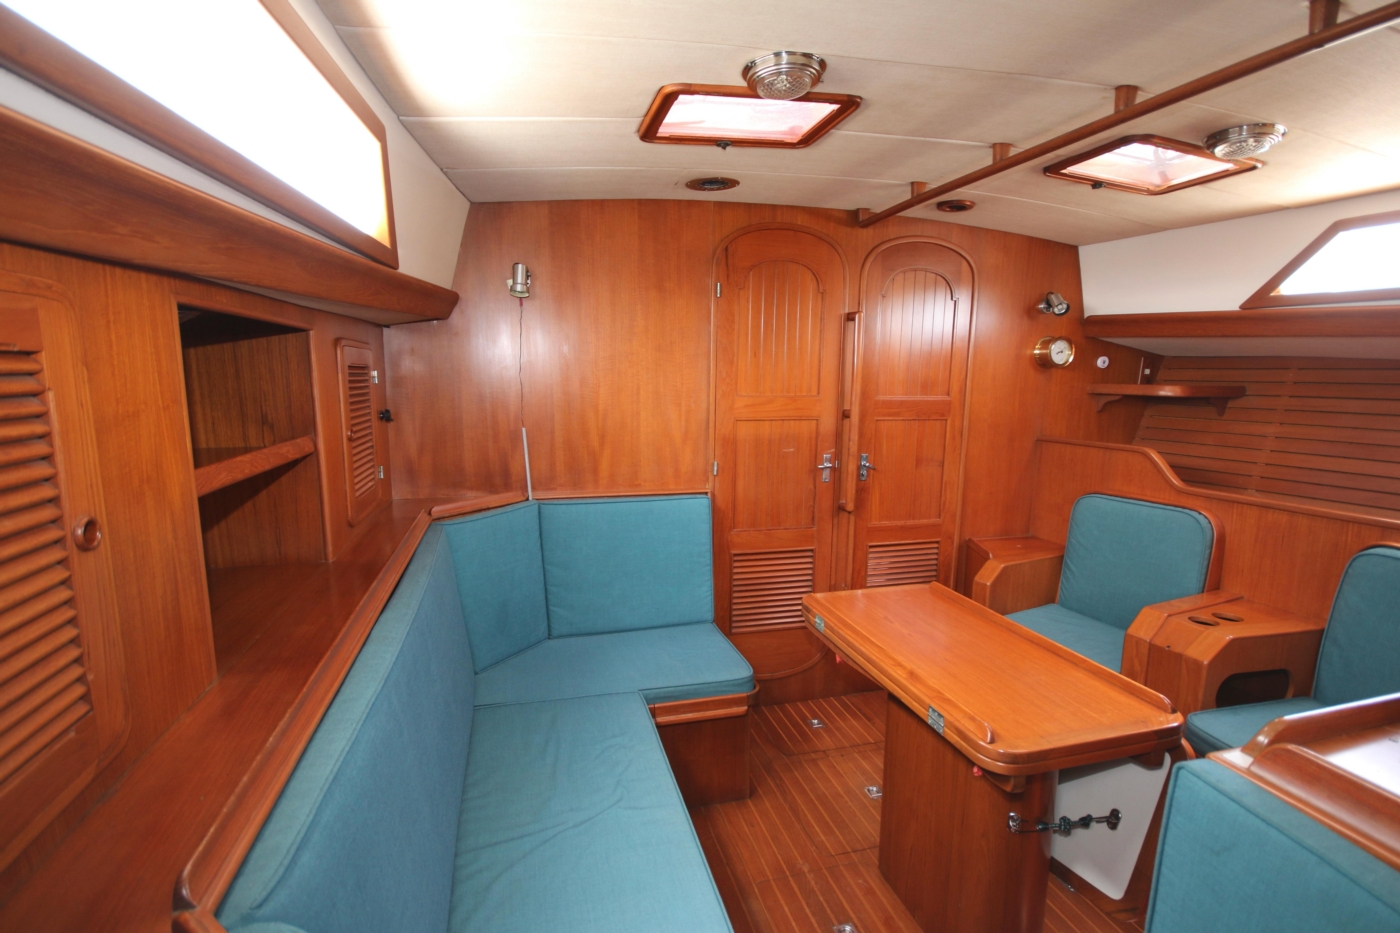 1996 Tanton 45 Offshore, Salon